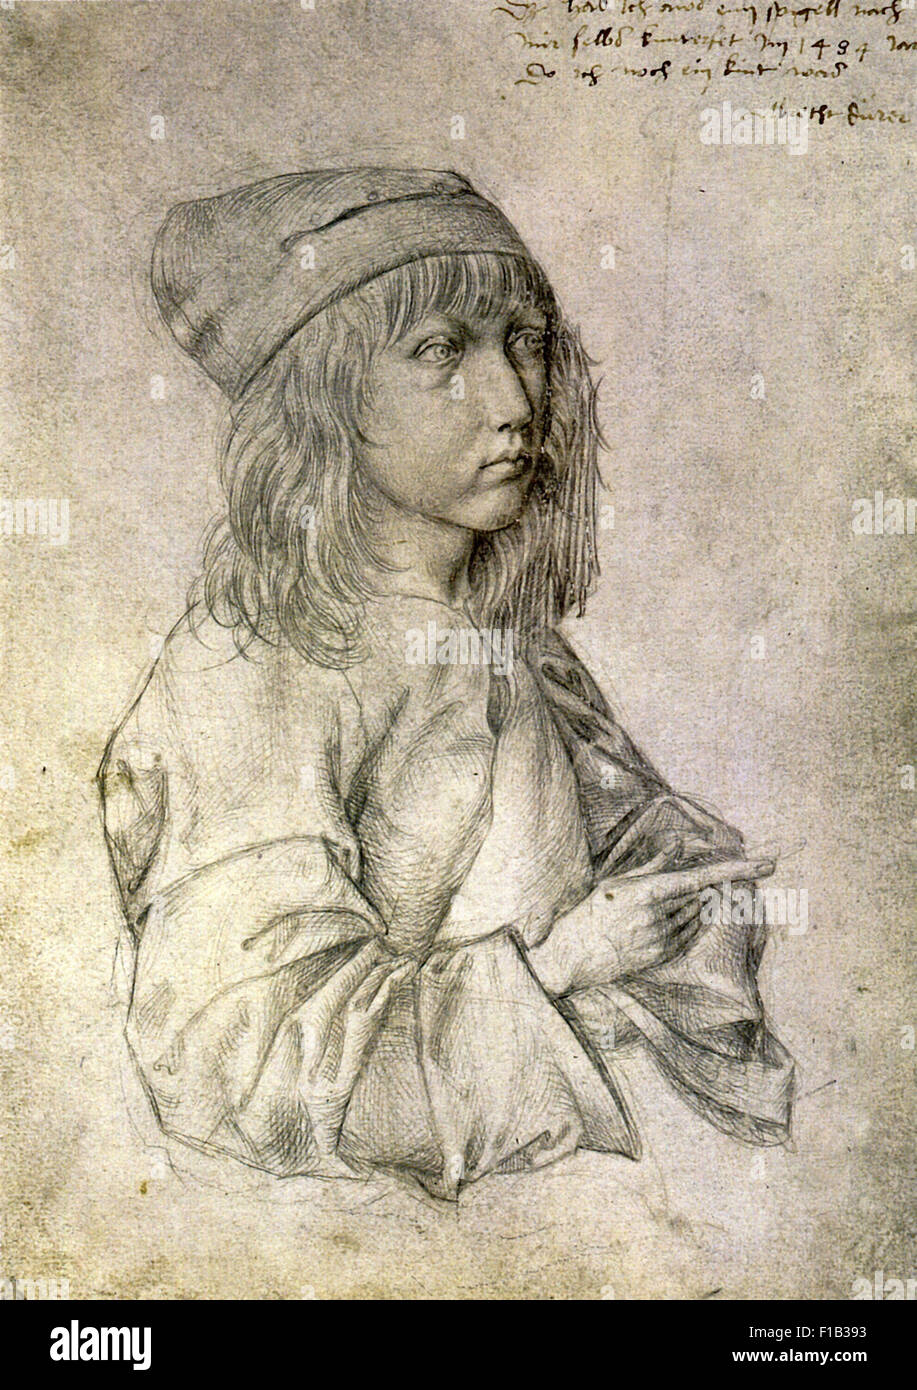 Albrecht Dürer - Self portrait at the Age of Thirteen - Stock Image